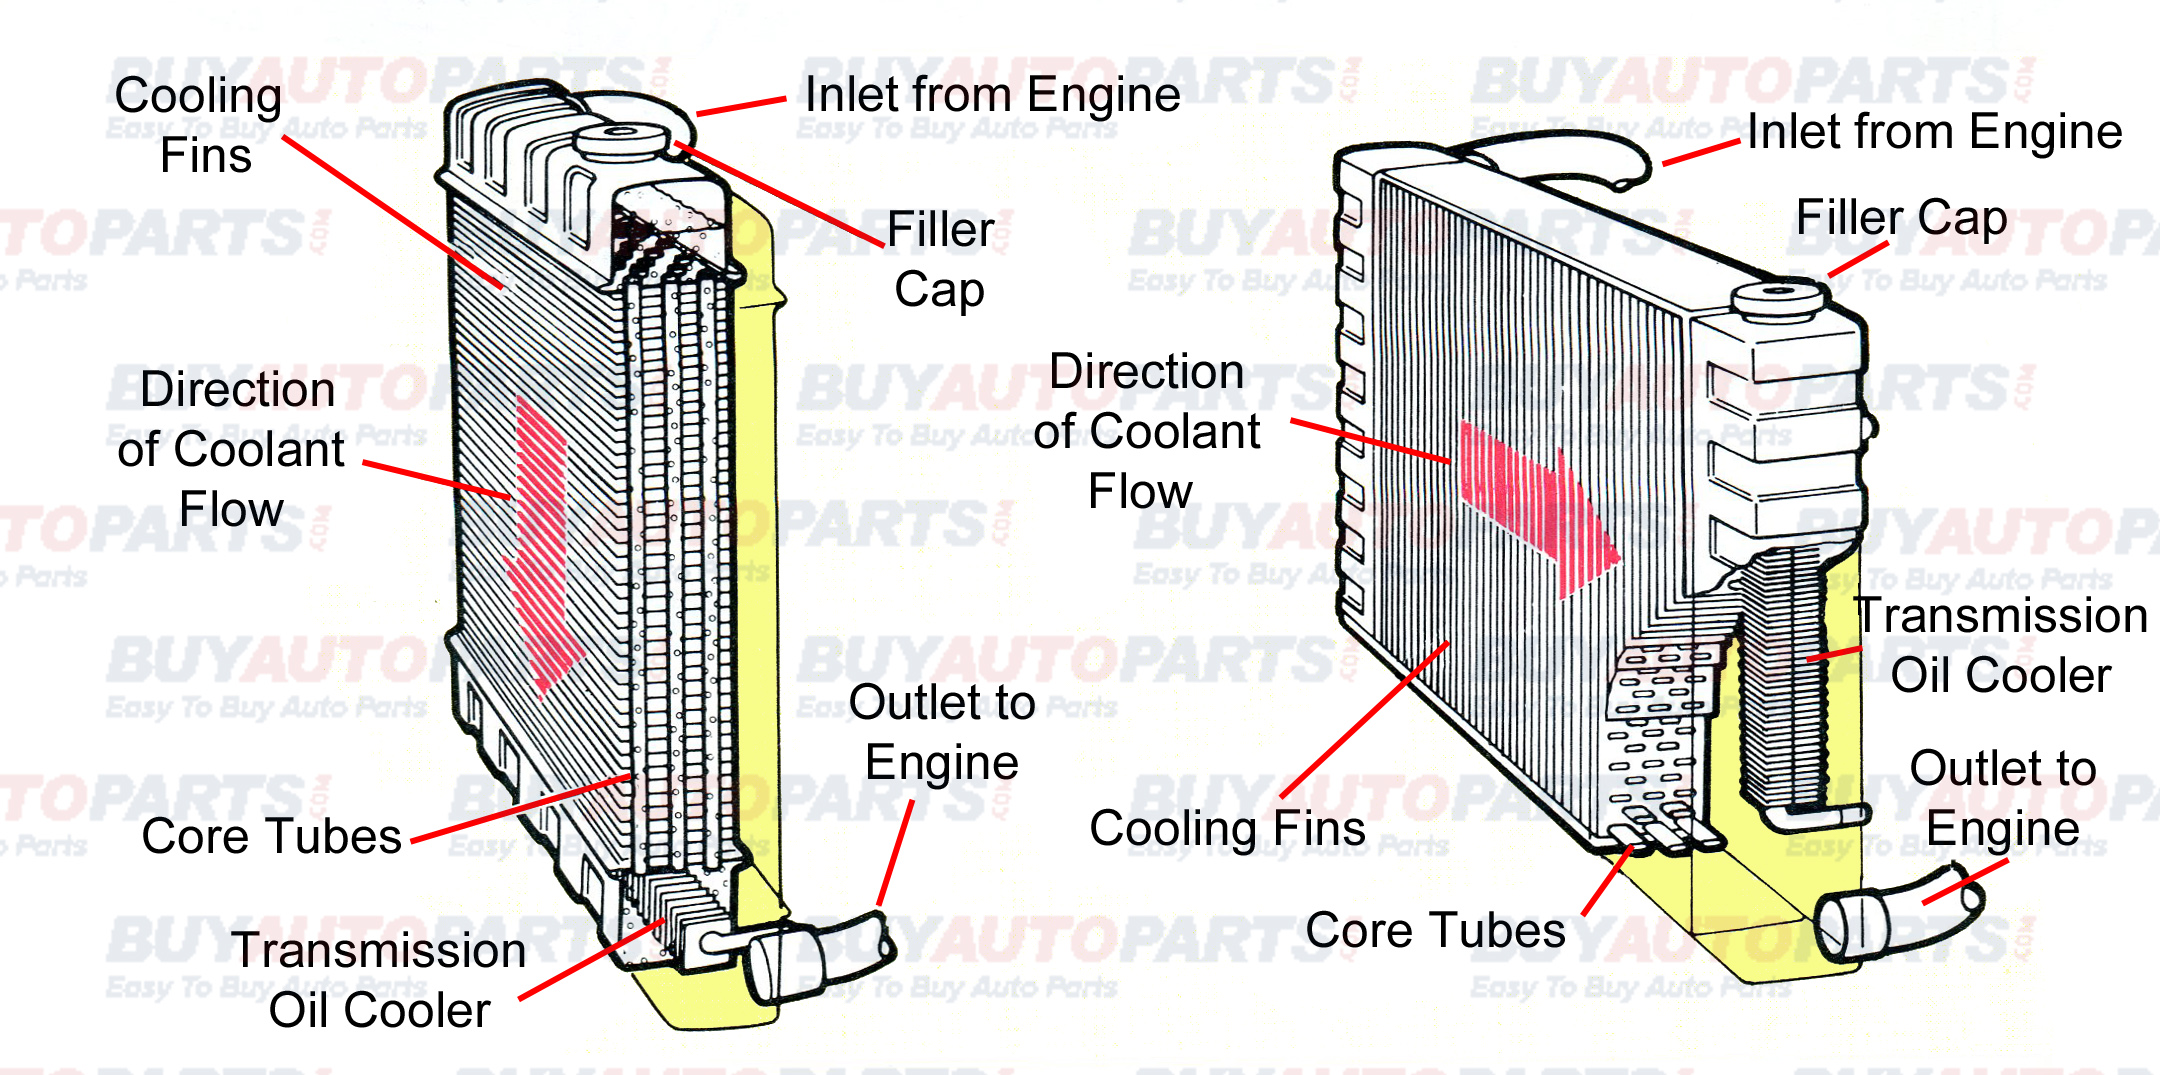 Fj55 Wiring Diagram Best Radiators Of A Radiator Honda Accord88 And Schematics Circuit Schematic